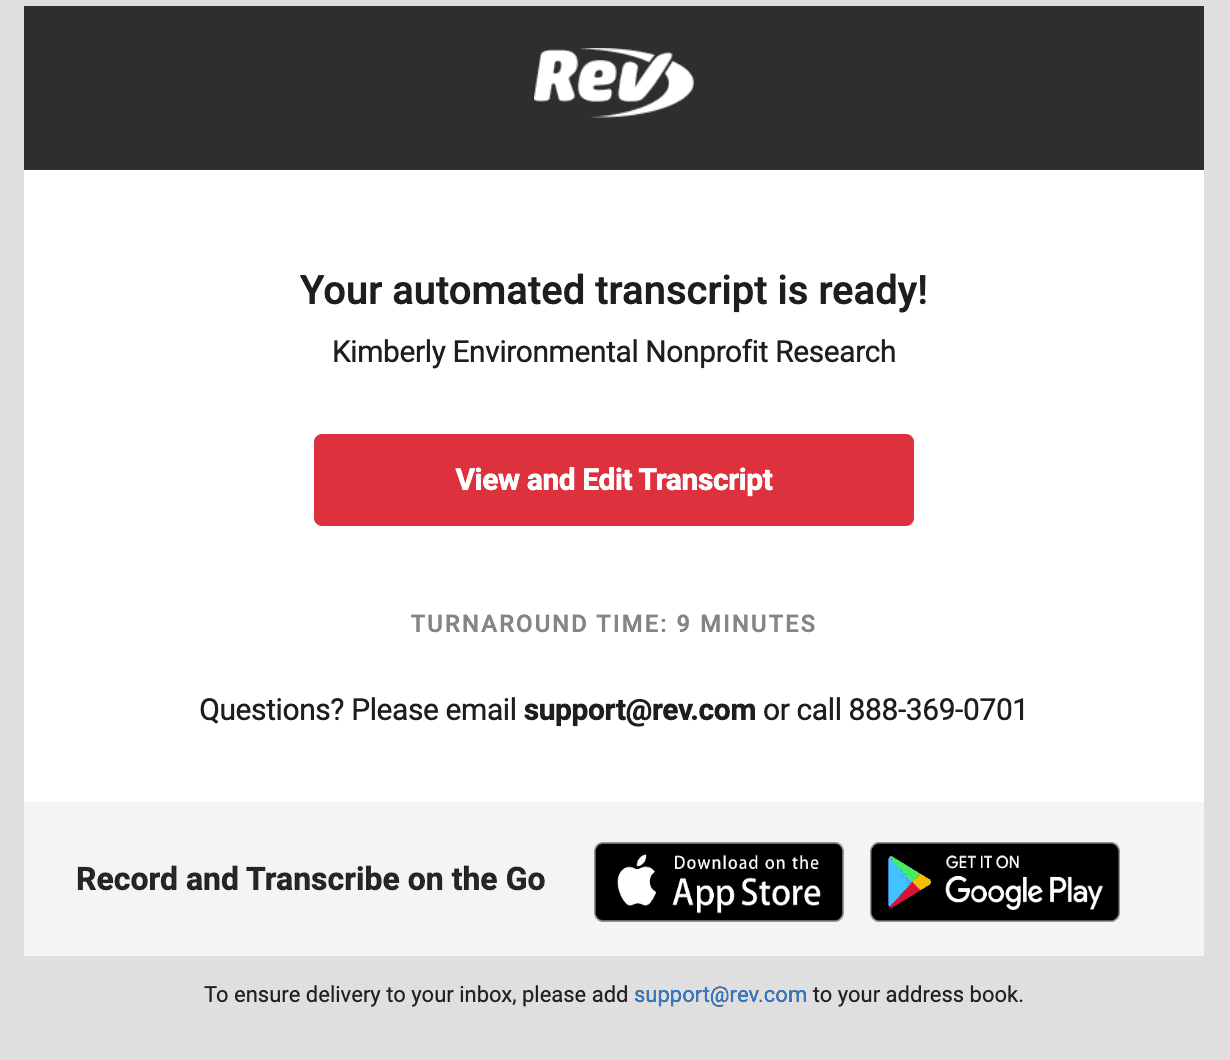 Automatic transcript delivery view and edit transcript rev.com